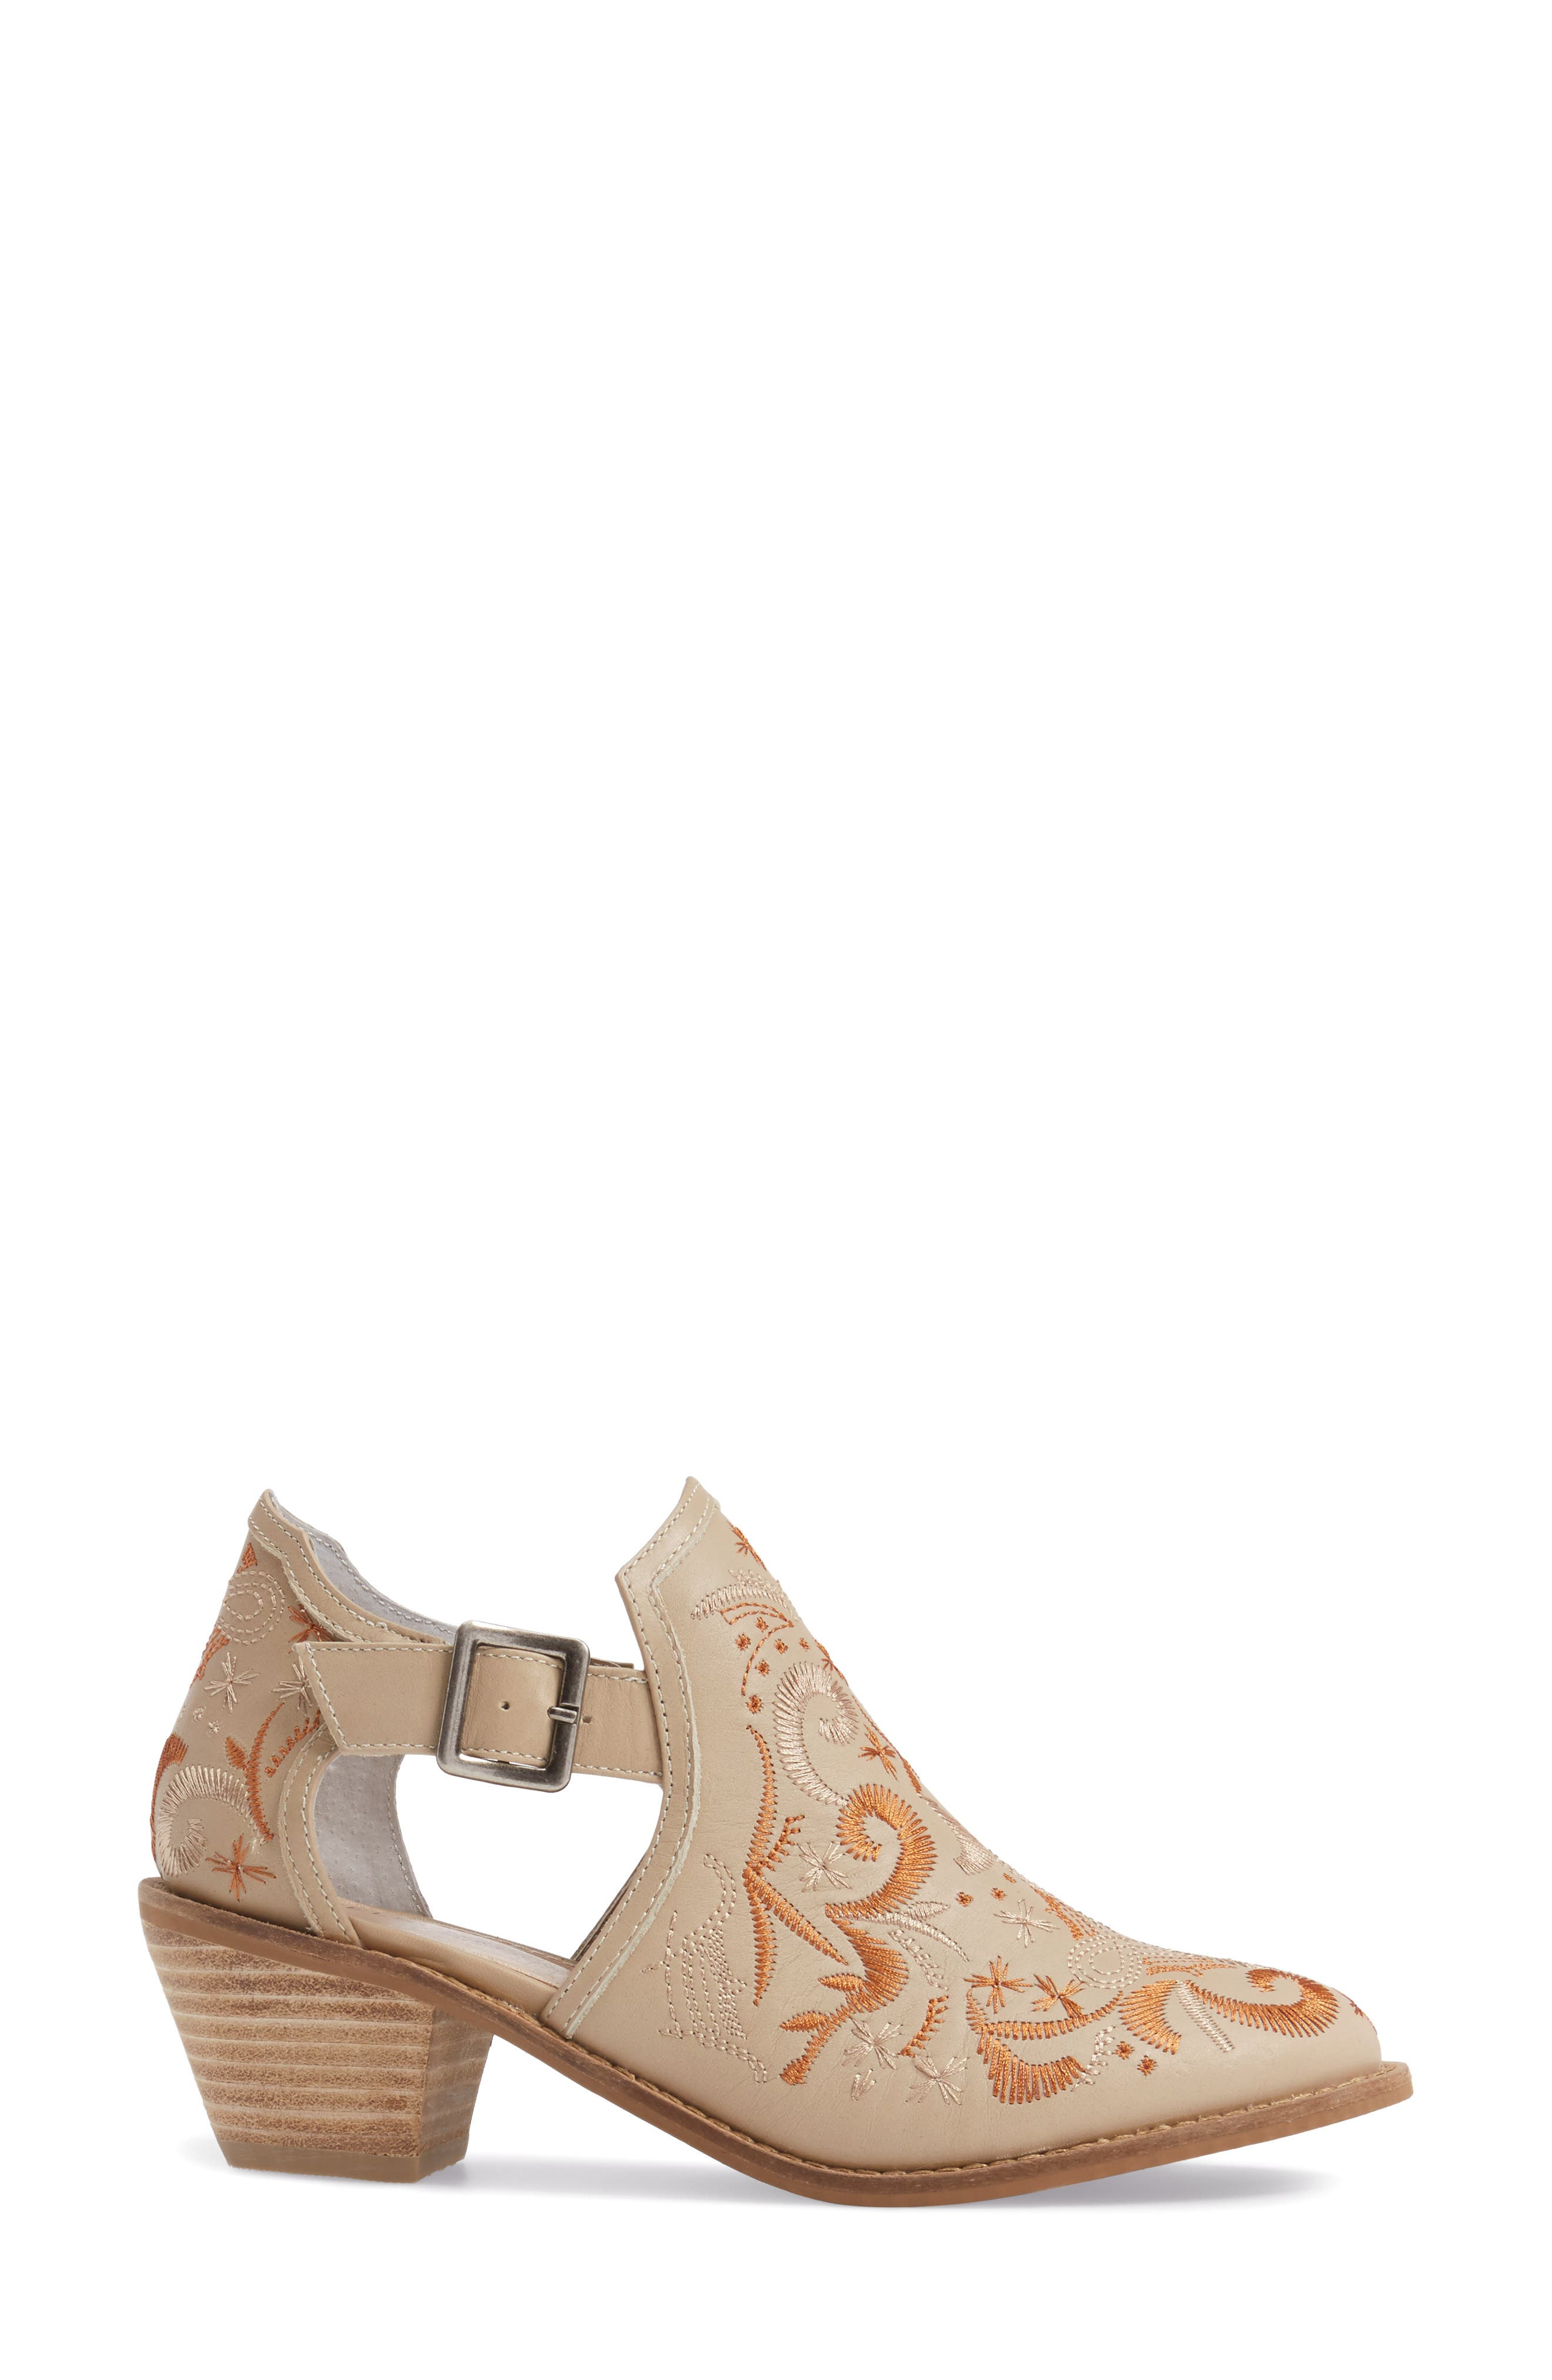 Kline Embroidered Bootie,                             Alternate thumbnail 3, color,                             Wheat Leather